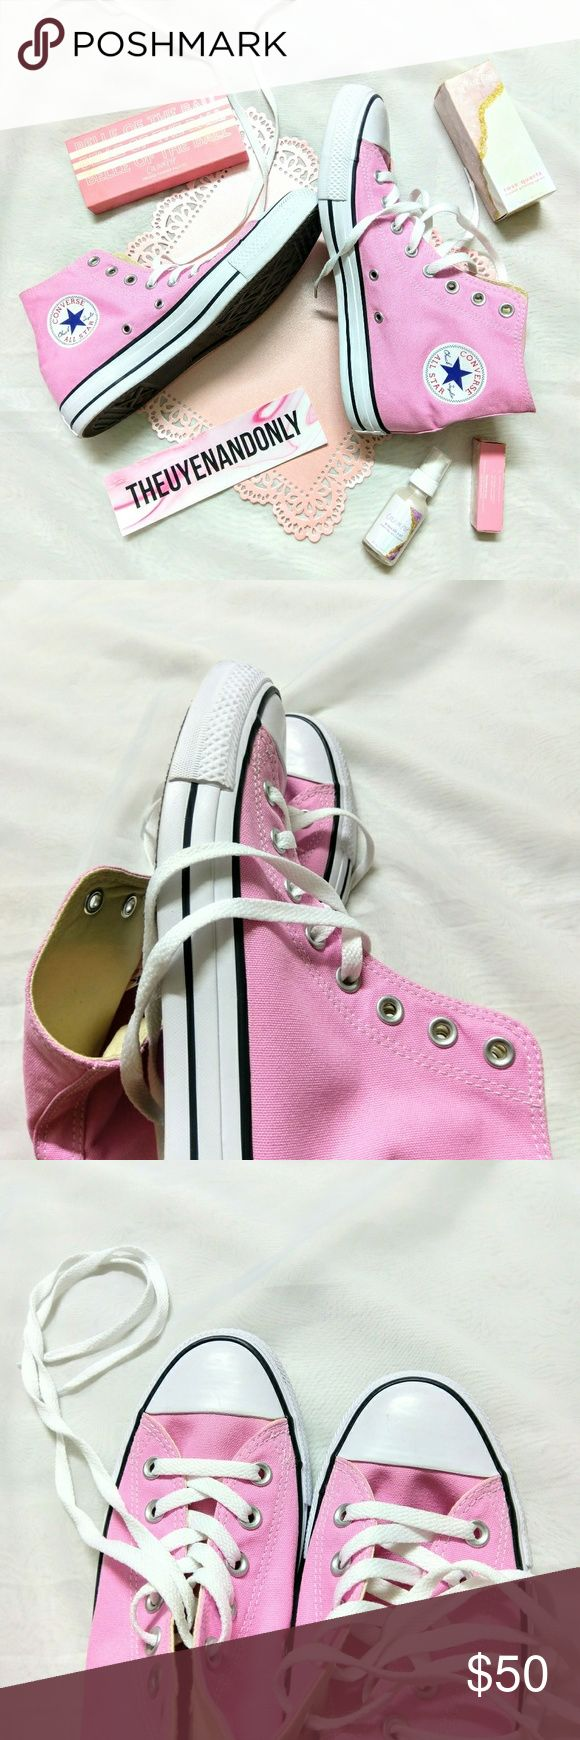 NEW Converse High Top Baby Pink Women 10 💠NEW WITHOUT CONVERSE BOX  💠NEVER WORN  💠NO TRADE  💠SHOES ONLY. Other Accessories are NOT INCLUDED  💠Accept Reasonable Offer Only Converse Shoes Sneakers